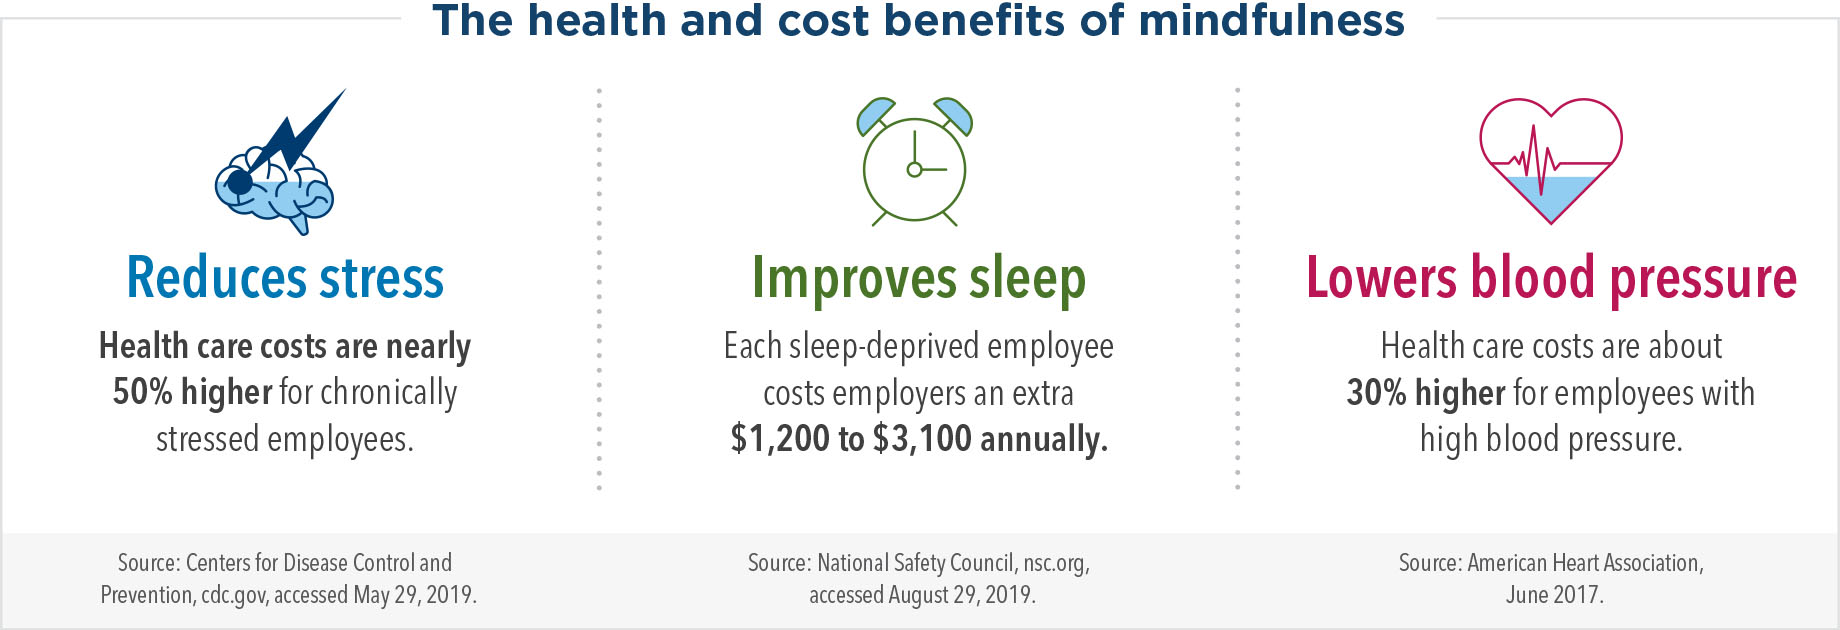 The health and cost benefits of mindfulness: mindfulness reduces stress, improves sleep, and lowers blood pressure. Health care costs are nearly 50% higher for chronically stressed employees. Each sleep-deprived employee costs employers an extra $1,200 to $3,100 annually. Health care costs are about 30% higher for employees with high blood pressure.